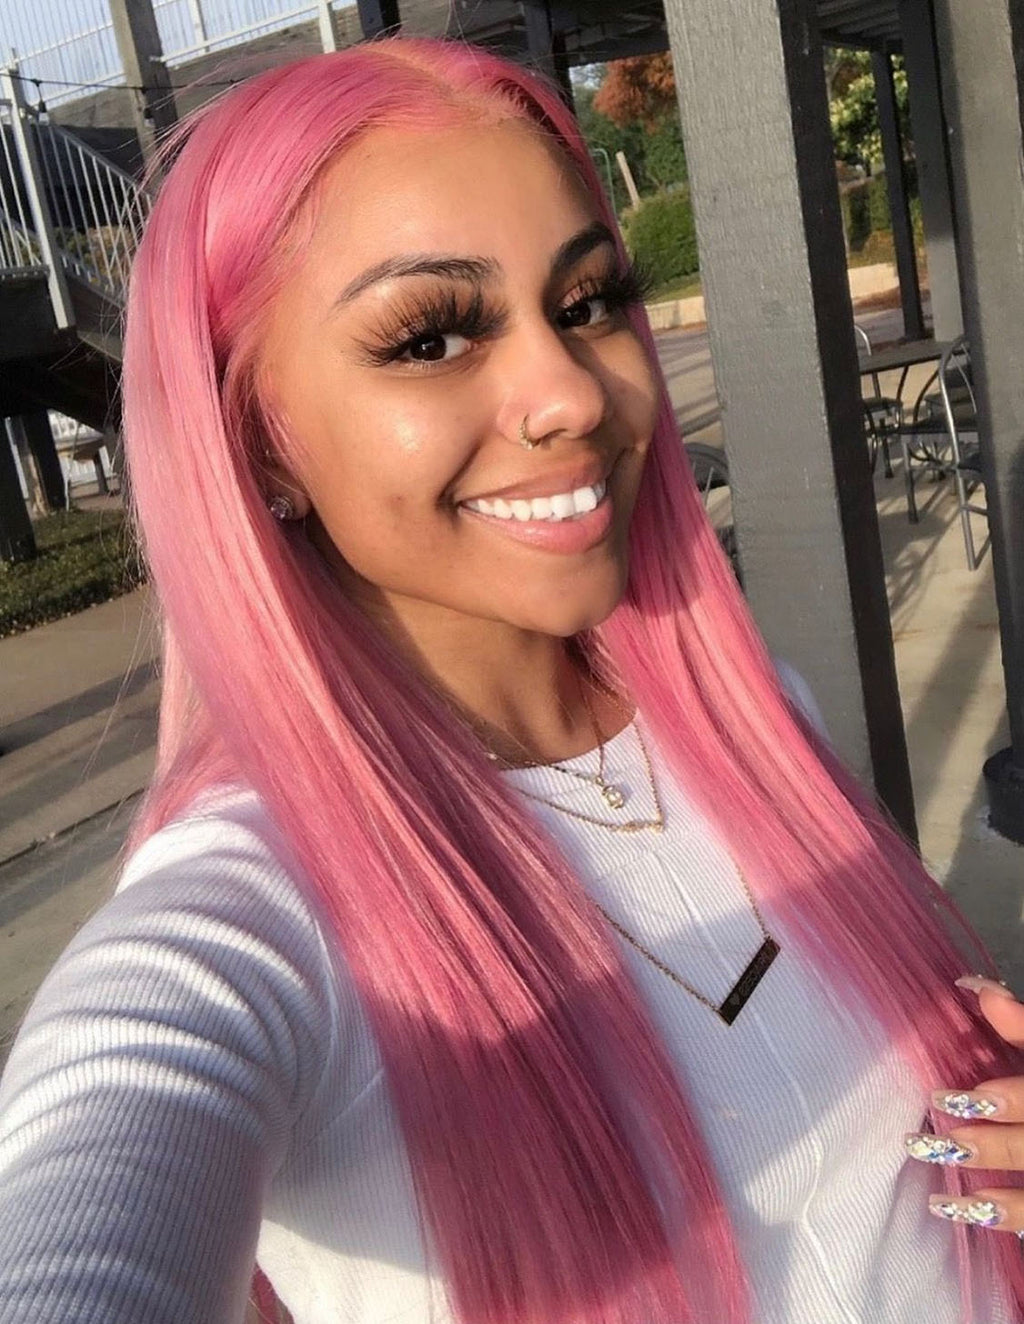 New Arrival Pink Ombre Wig 100% Human Remy Hair Hairstyle and Color The Same As The Model in The Picture - Truelovewigs.com